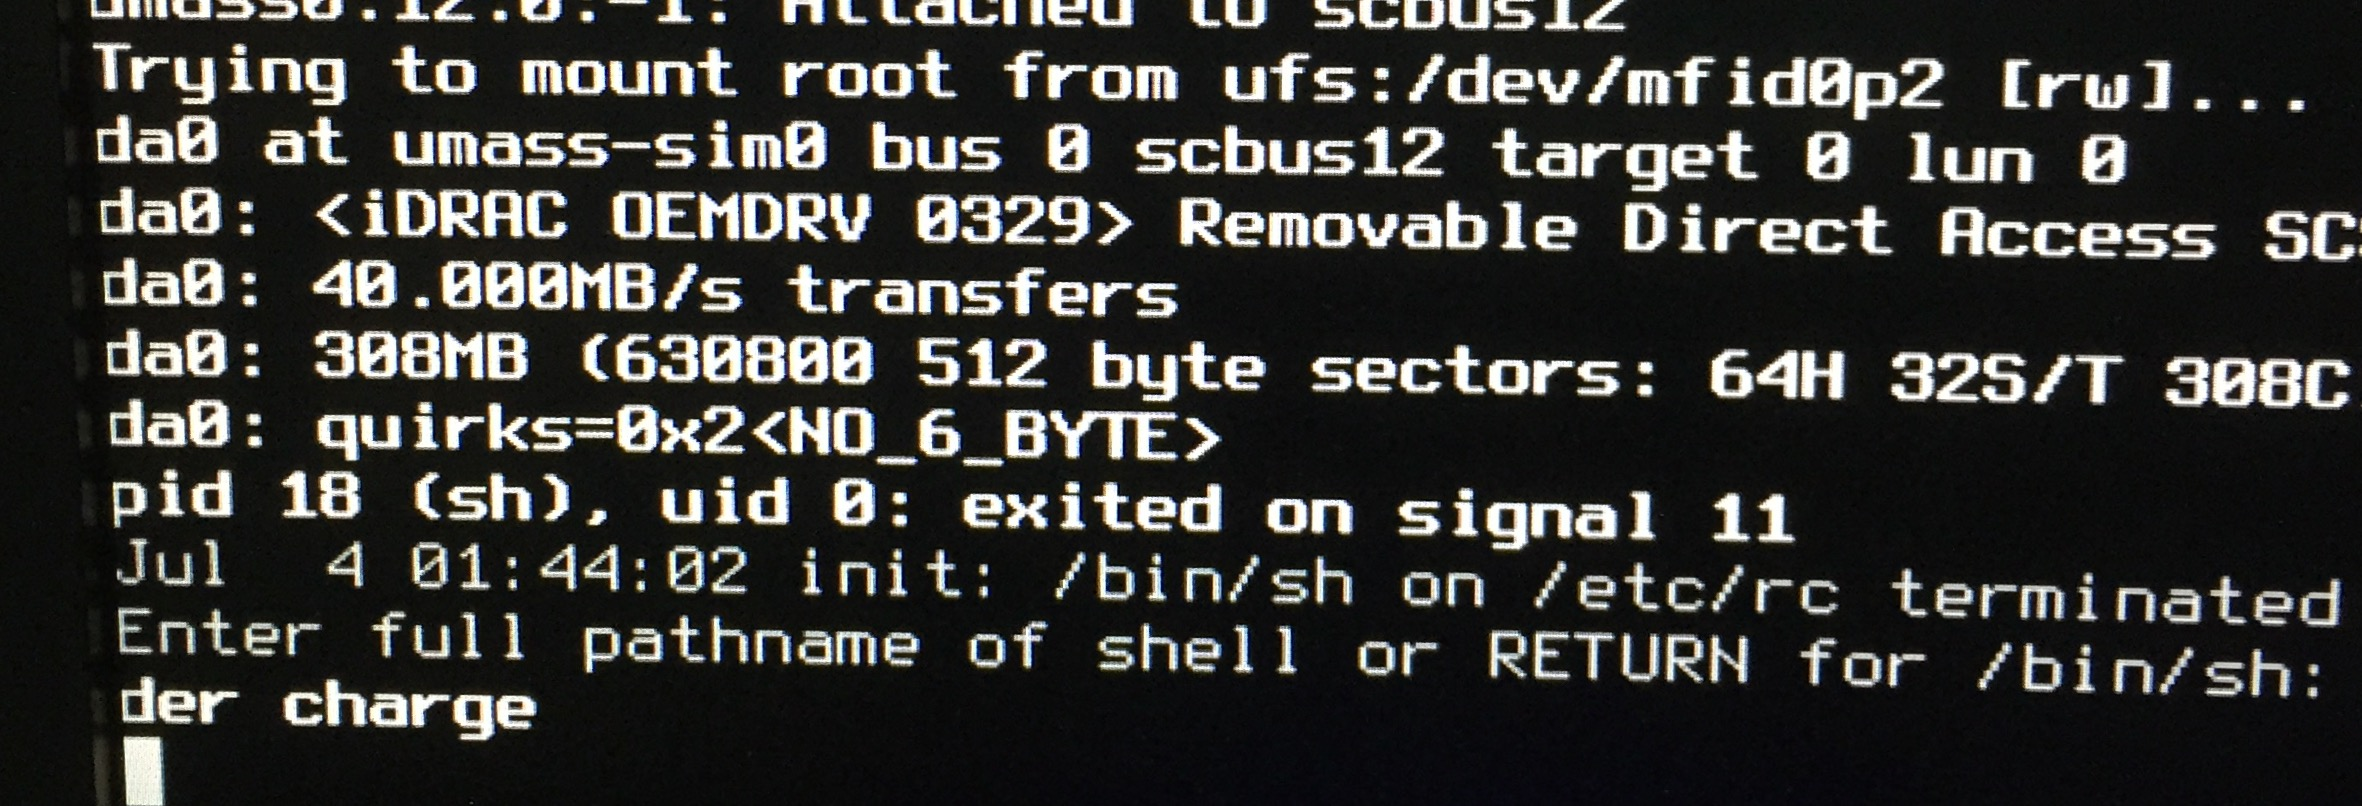 Problems booting up Dell R730 - IDRAC   The FreeBSD Forums